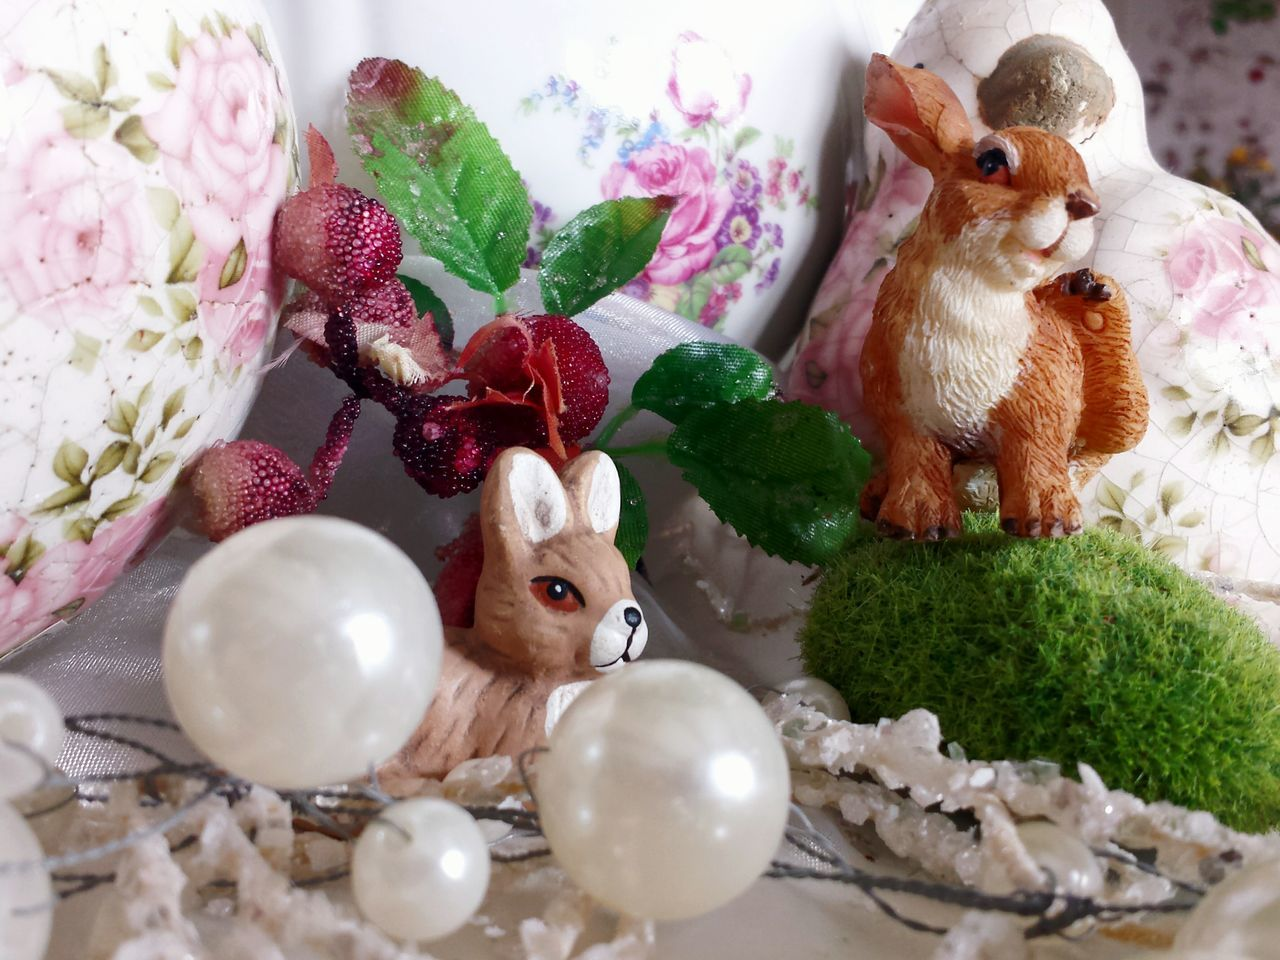 Easter Bunny Easter Easter Bunnies  Still Life Photography Stillleben Osterhase Ostern Ist Nicht Mehr Fern Easter Is Coming Soon Easter Decor Easter Is Around The Corner Easter Ready